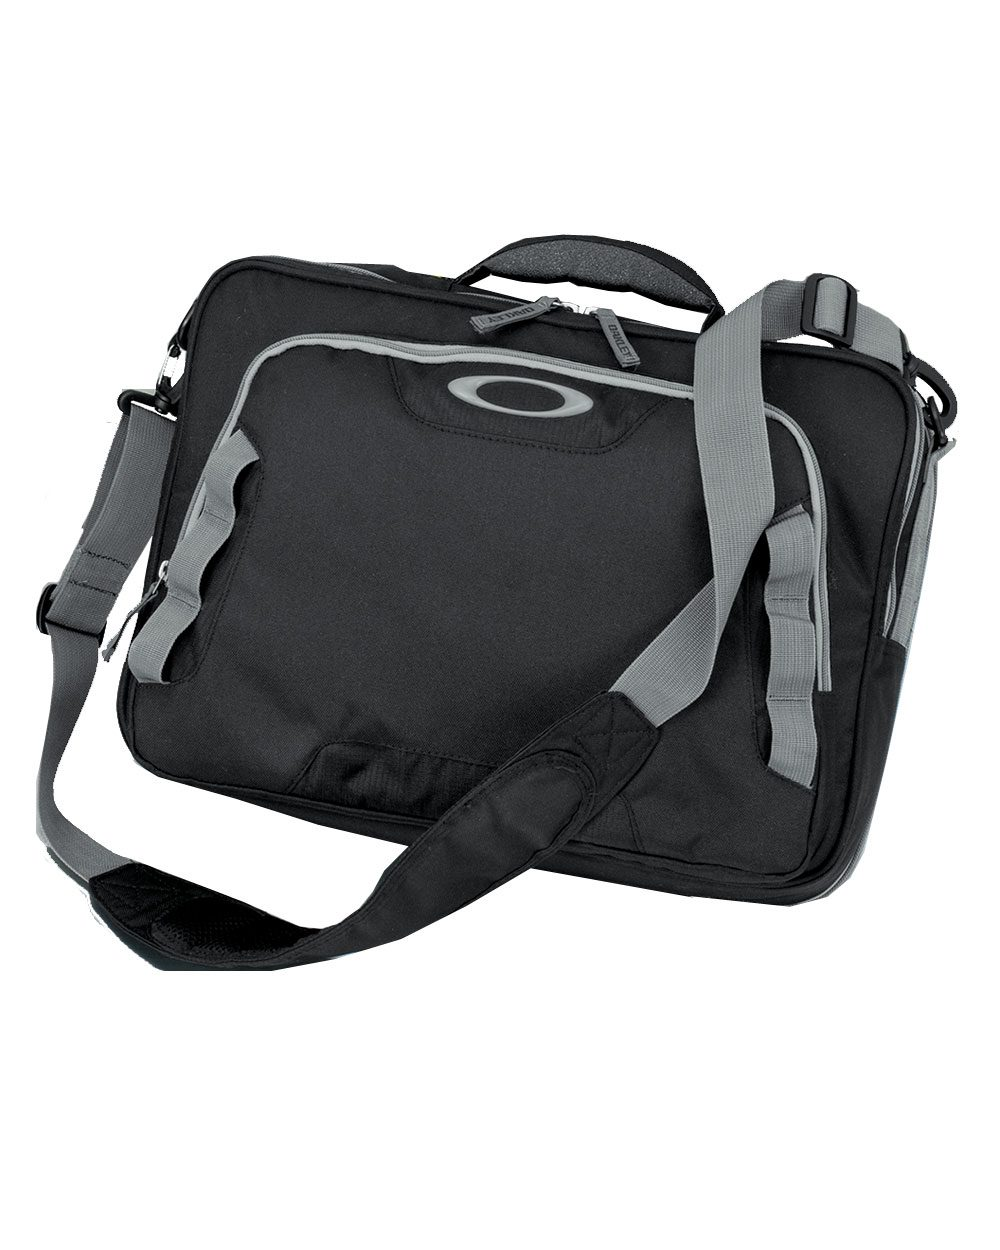 Oakley 92613 - Works Computer Bag